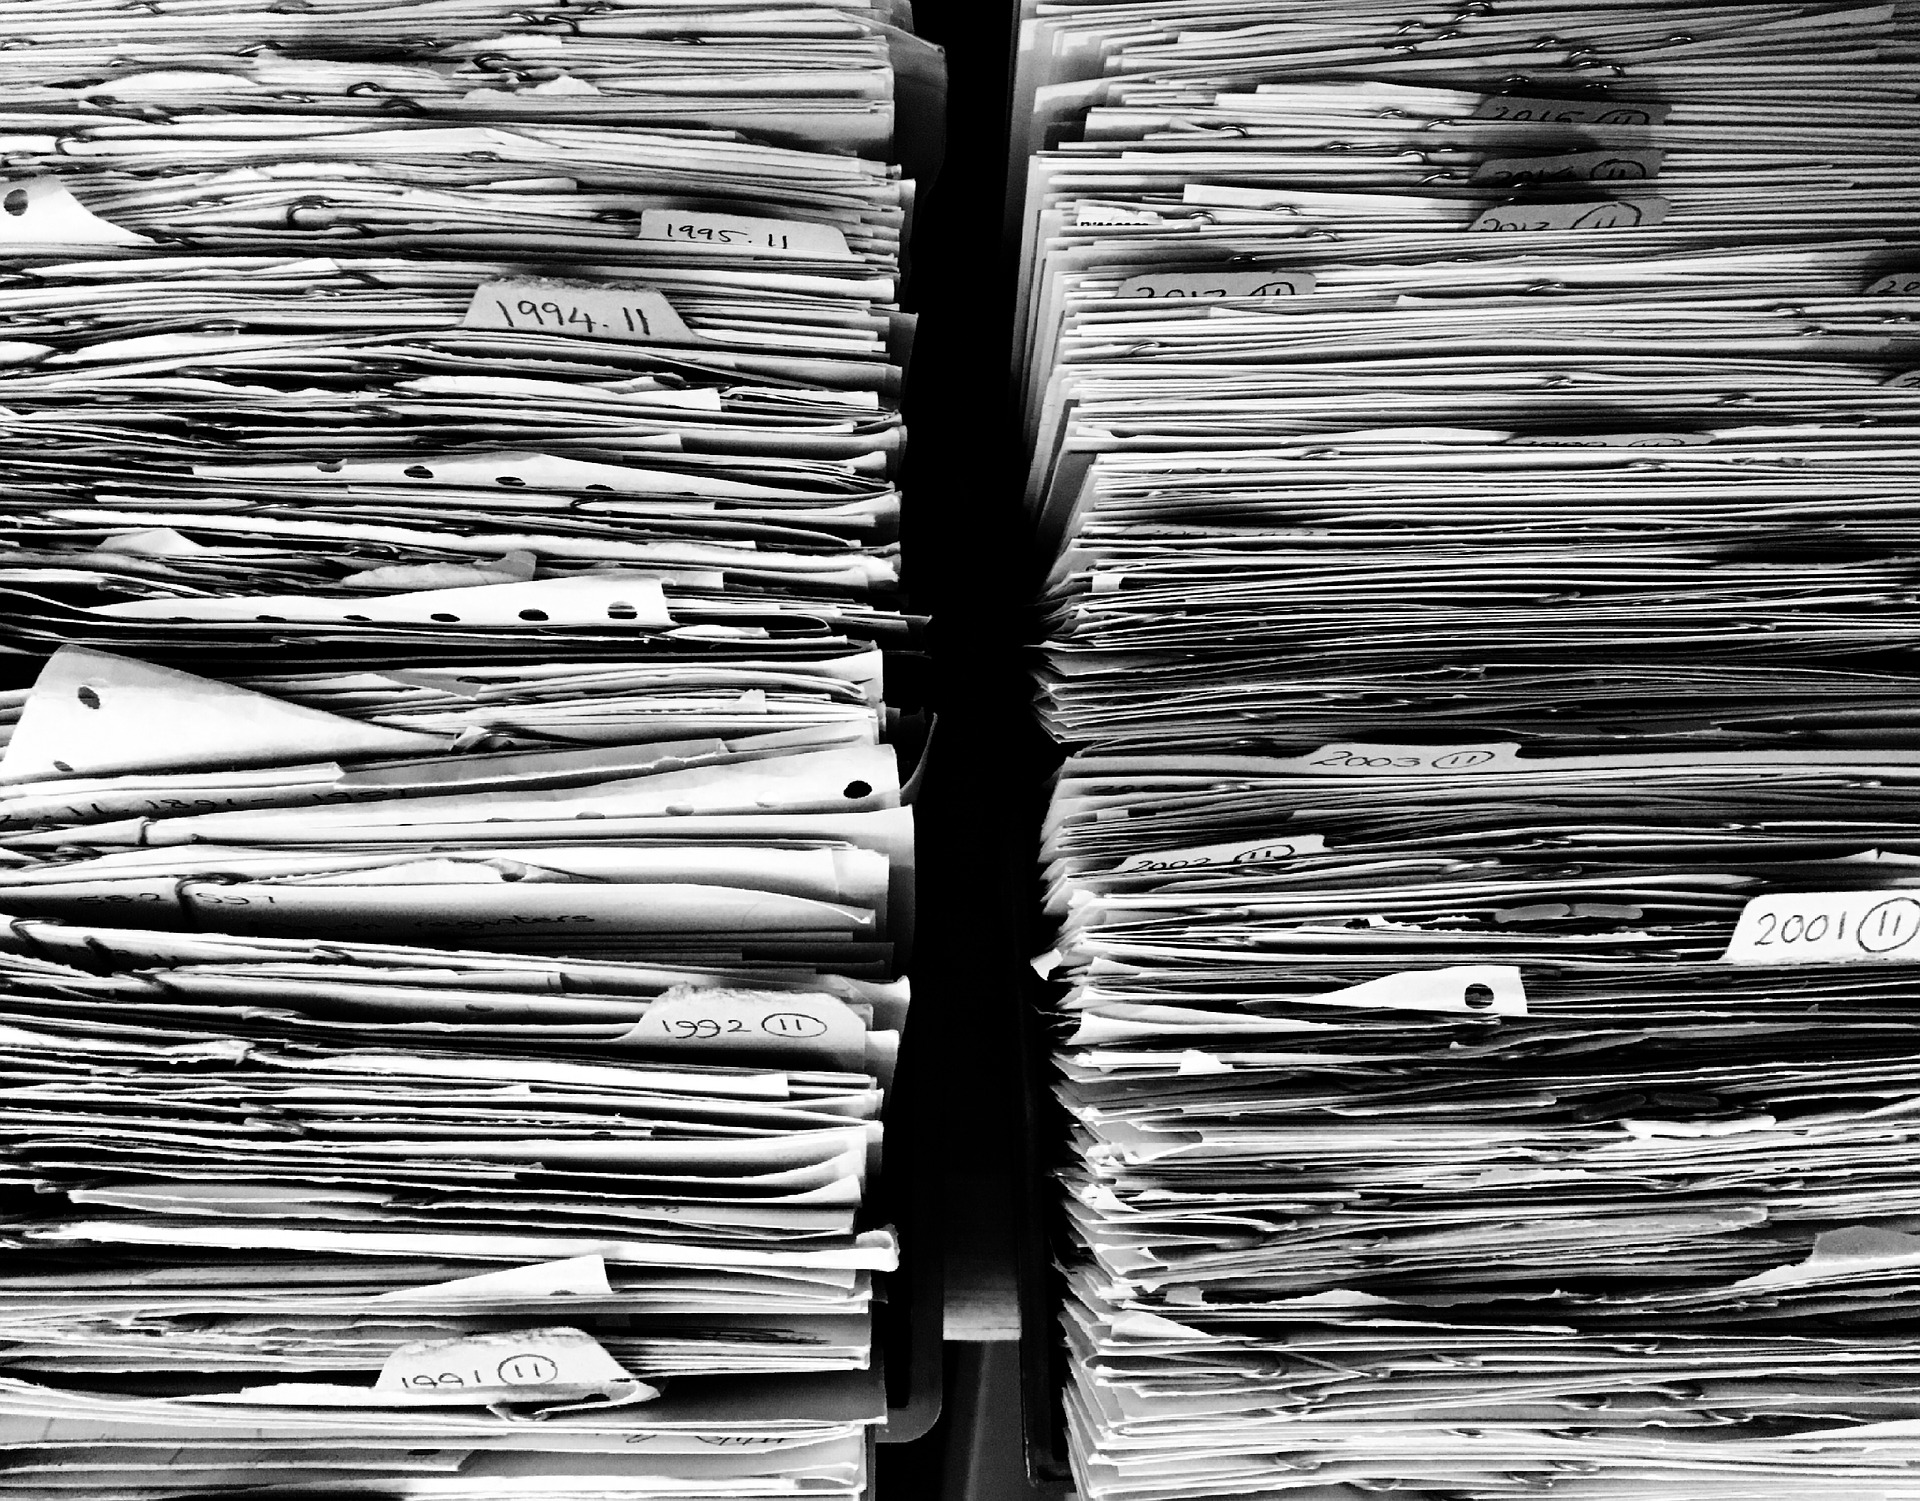 Stacks of papers with makers separating annual segments from the year 1991 to 2012.